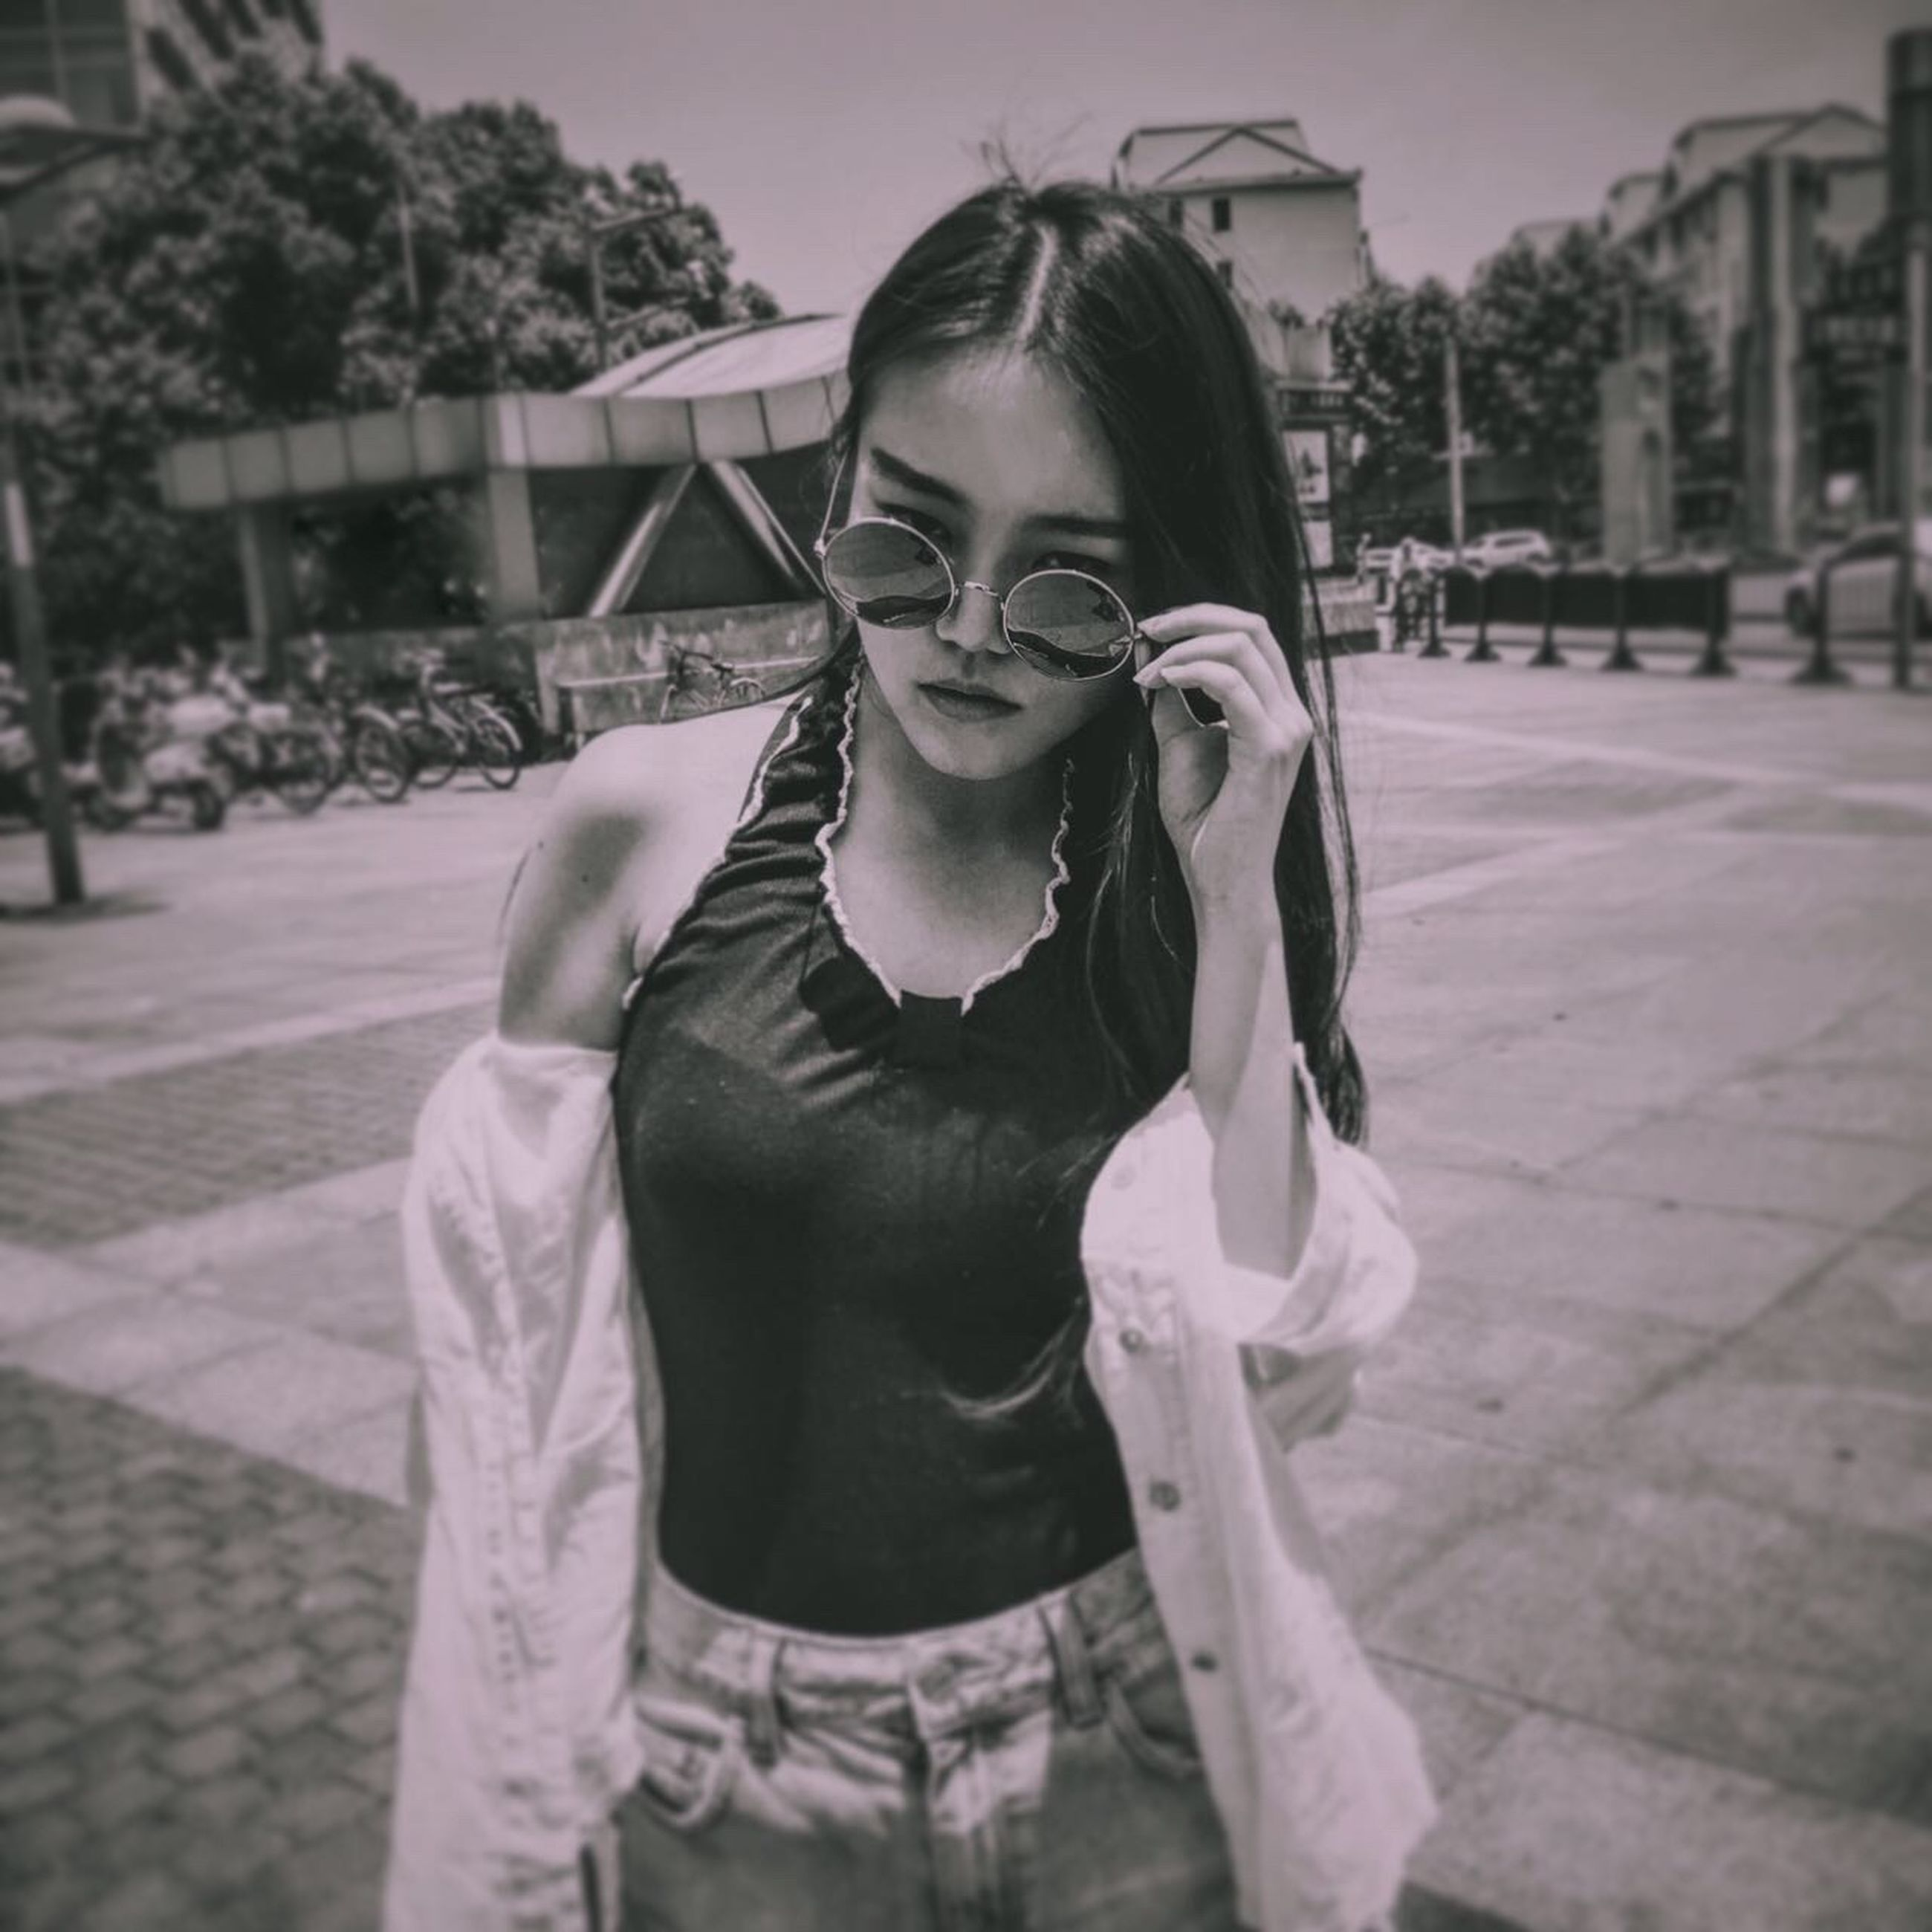 portrait, looking at camera, young adult, lifestyles, person, front view, casual clothing, sunglasses, leisure activity, standing, smiling, focus on foreground, young women, waist up, holding, fashion, outdoors, day